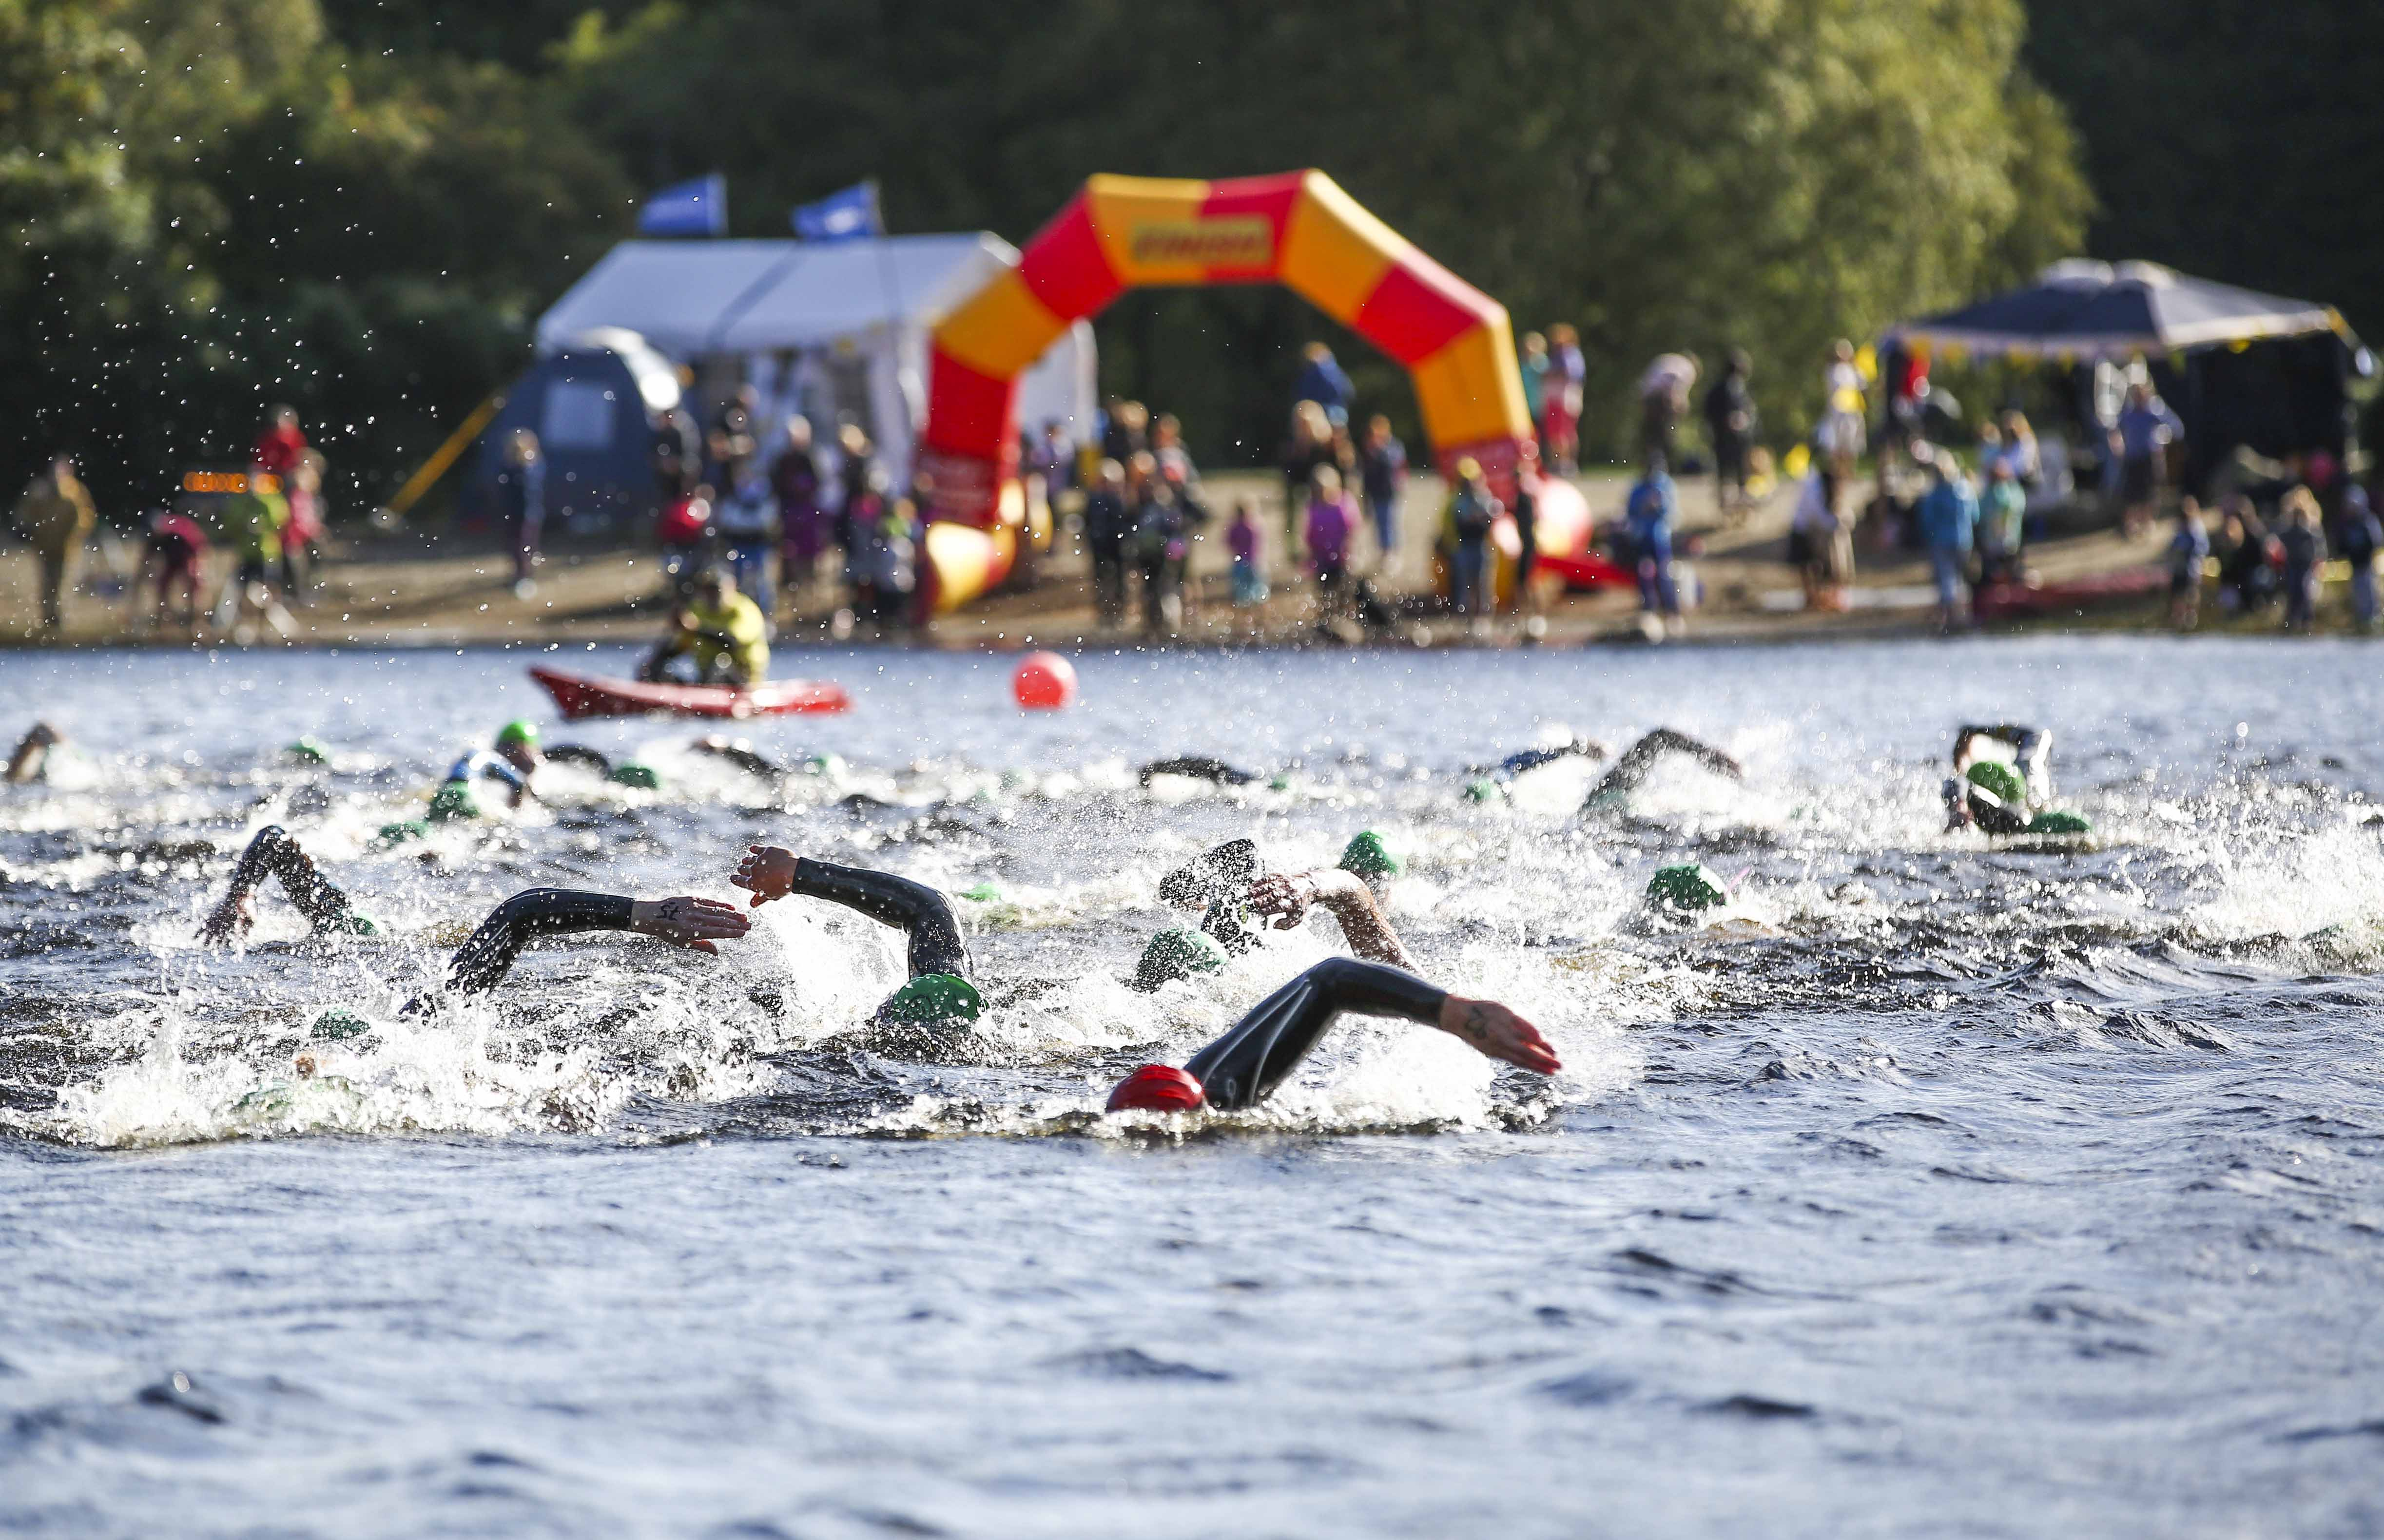 A group of open water swimmers racing away from the starting line at an Open Water Swimmer swim series.